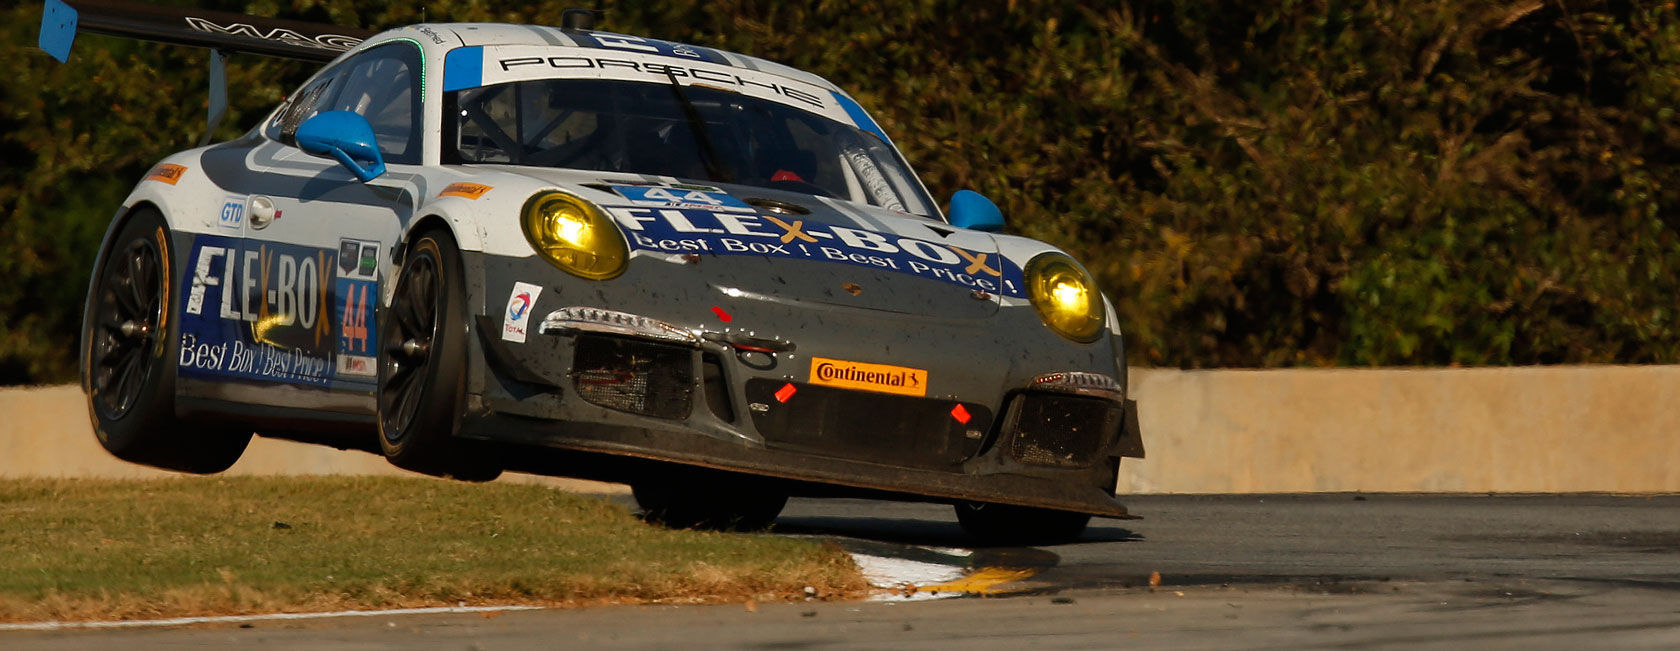 Porsche 911 | Magnus Racing at 12 Hours of Sebring 2014